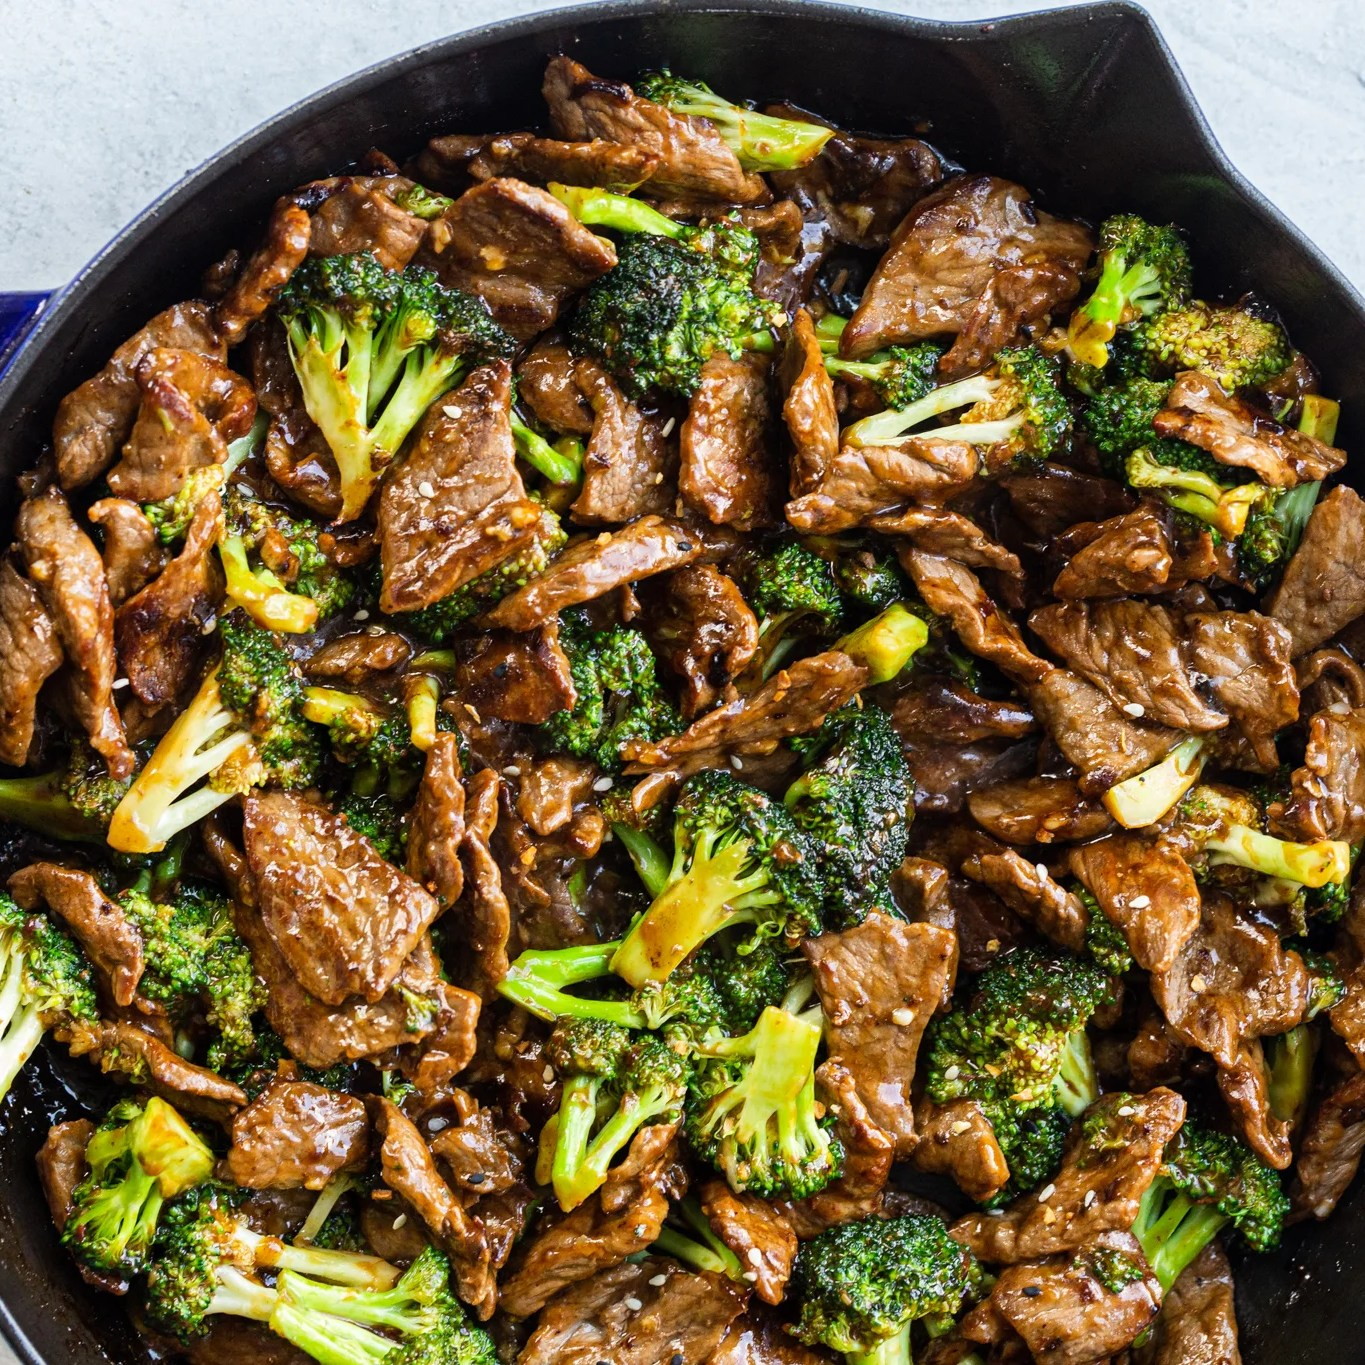 Beef and Broccoli in a cooking pan